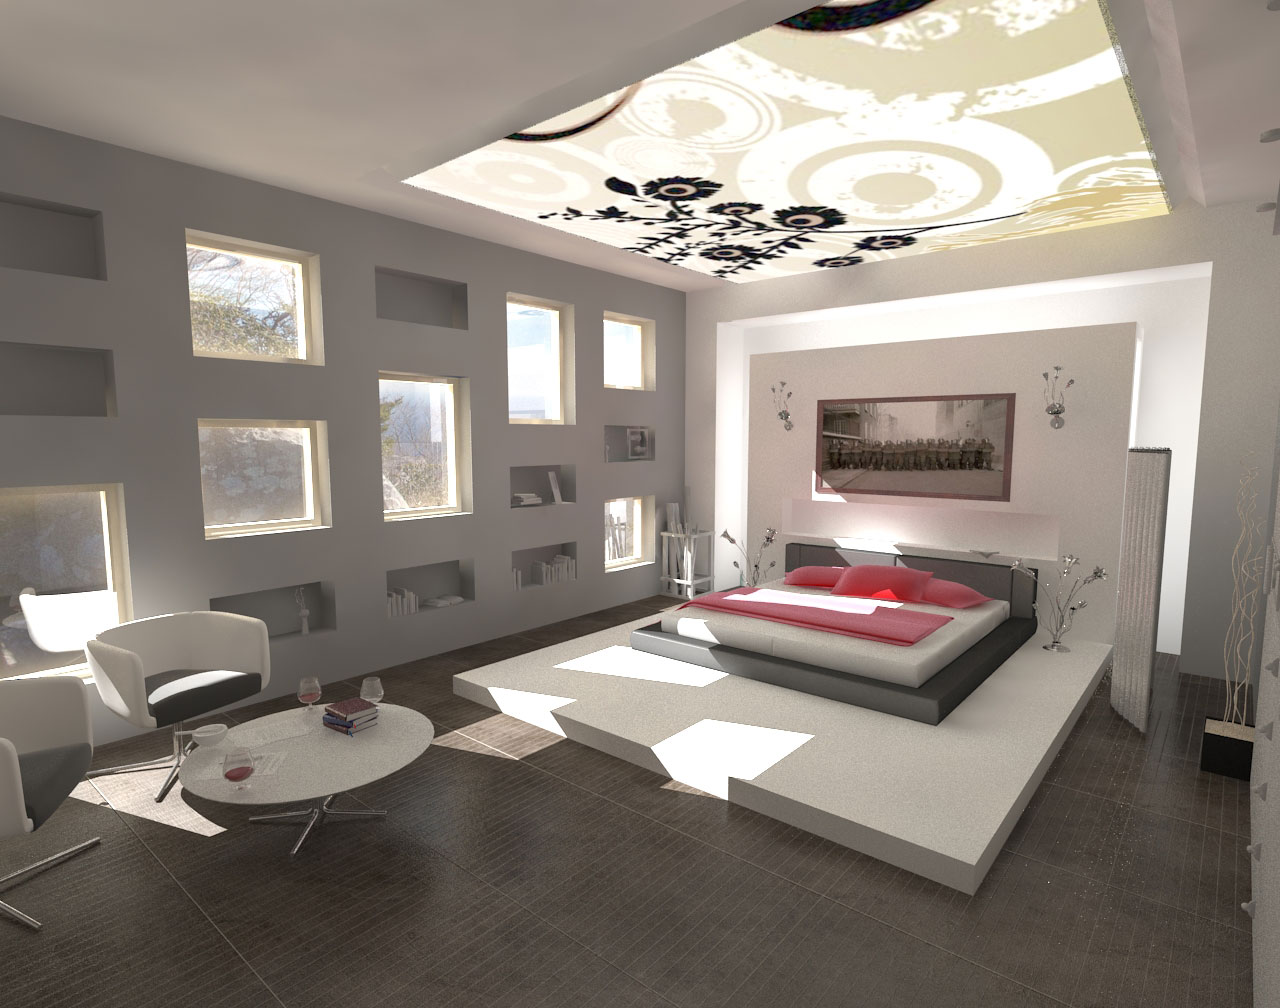 Decorations minimalist design modern bedroom interior for Minimalist style bedroom